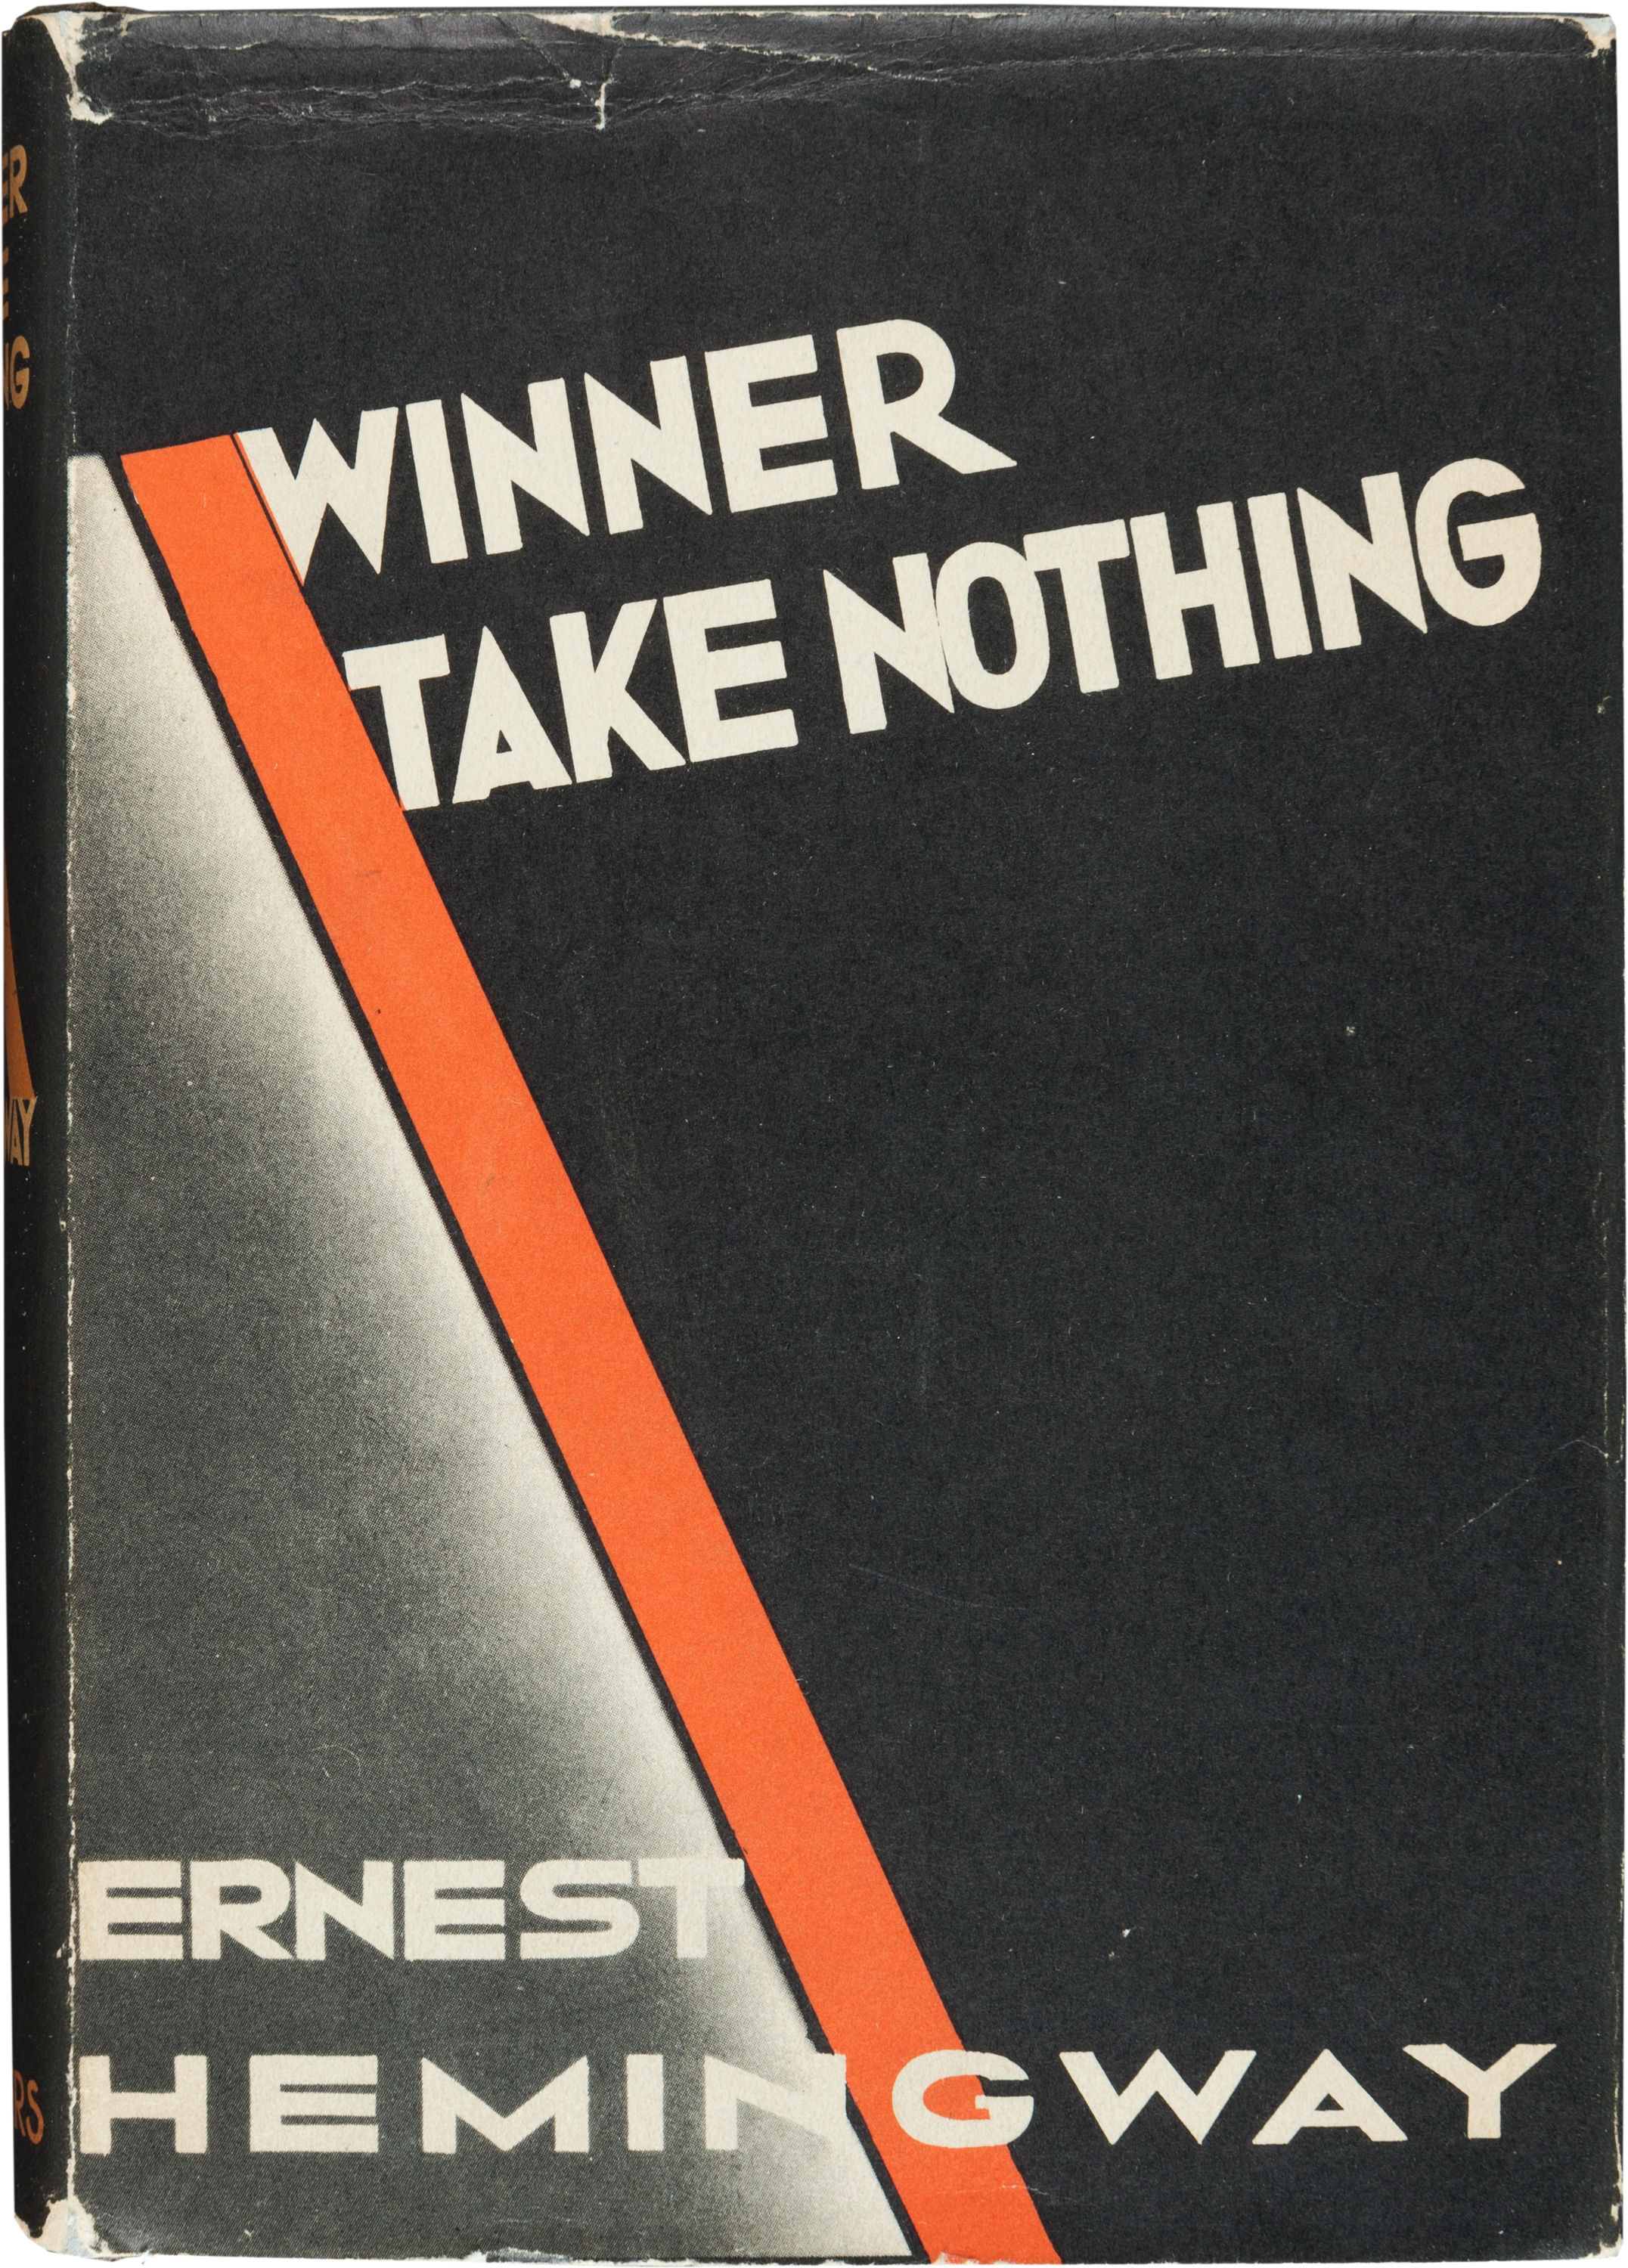 Winner Take Nothing. New York: 1933. First edition.